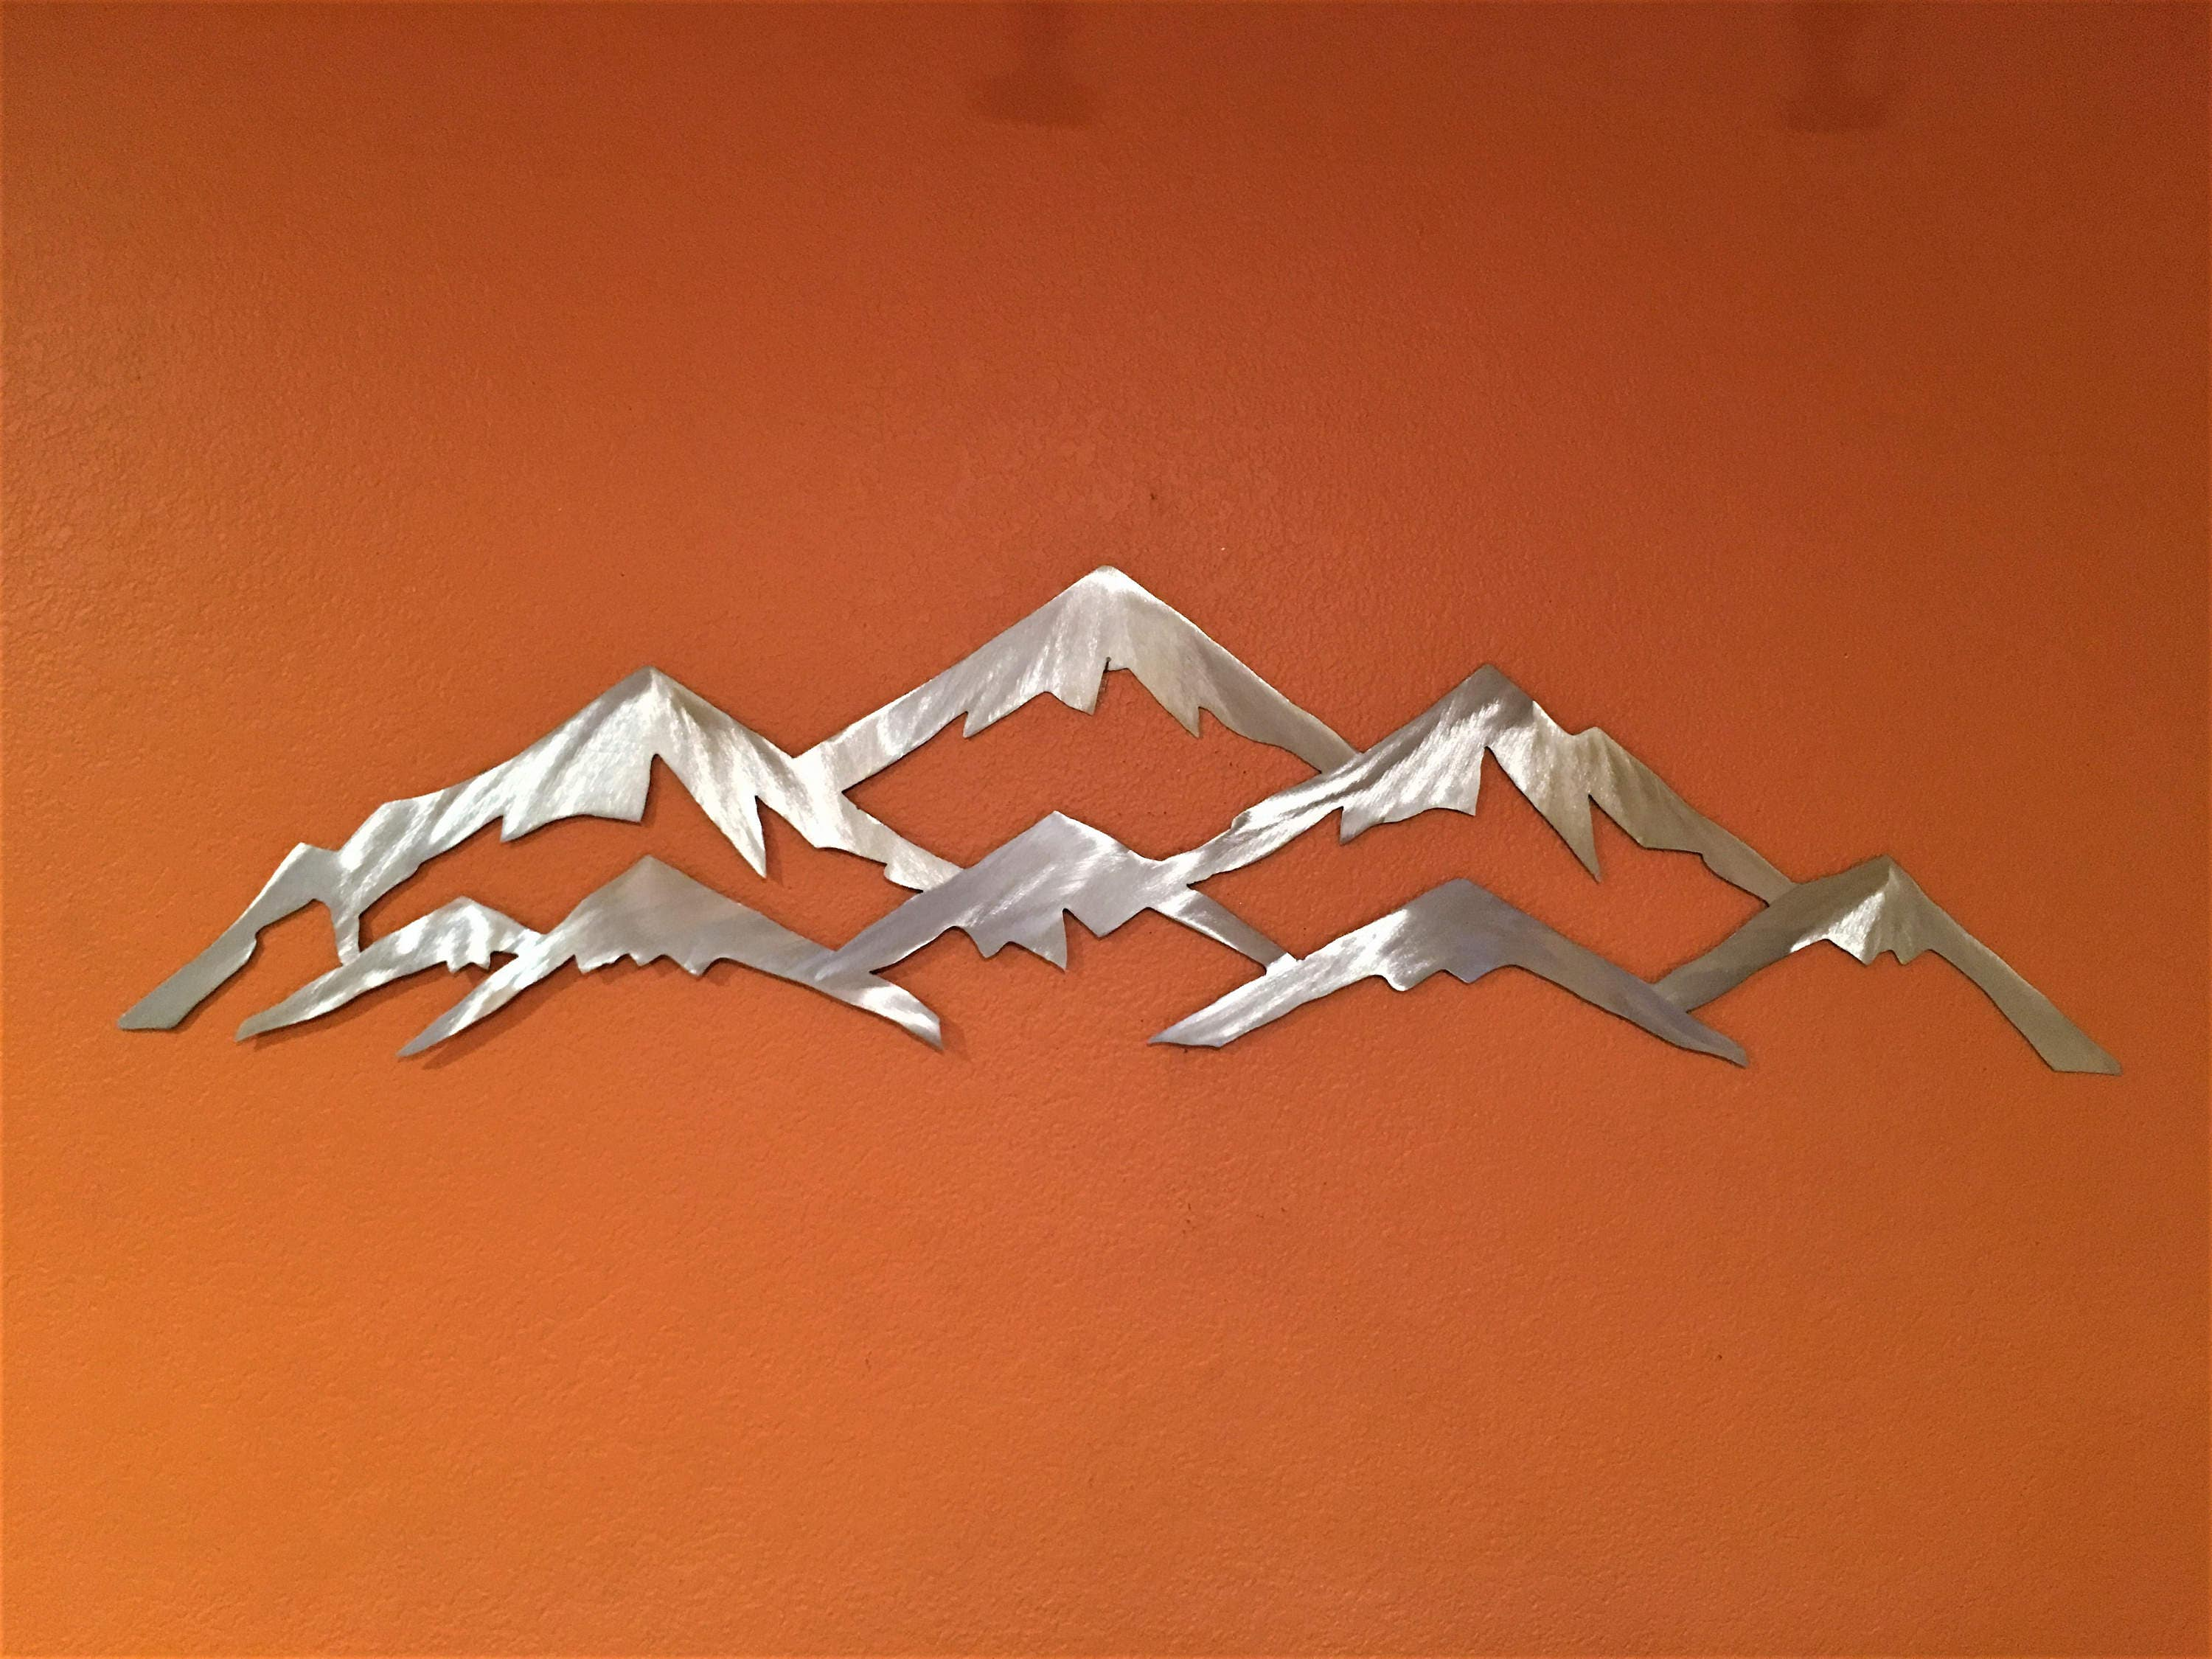 3 ft vail ski resort metal wall art mountains nature landscape mountain range nature lover - Wall arts images ...